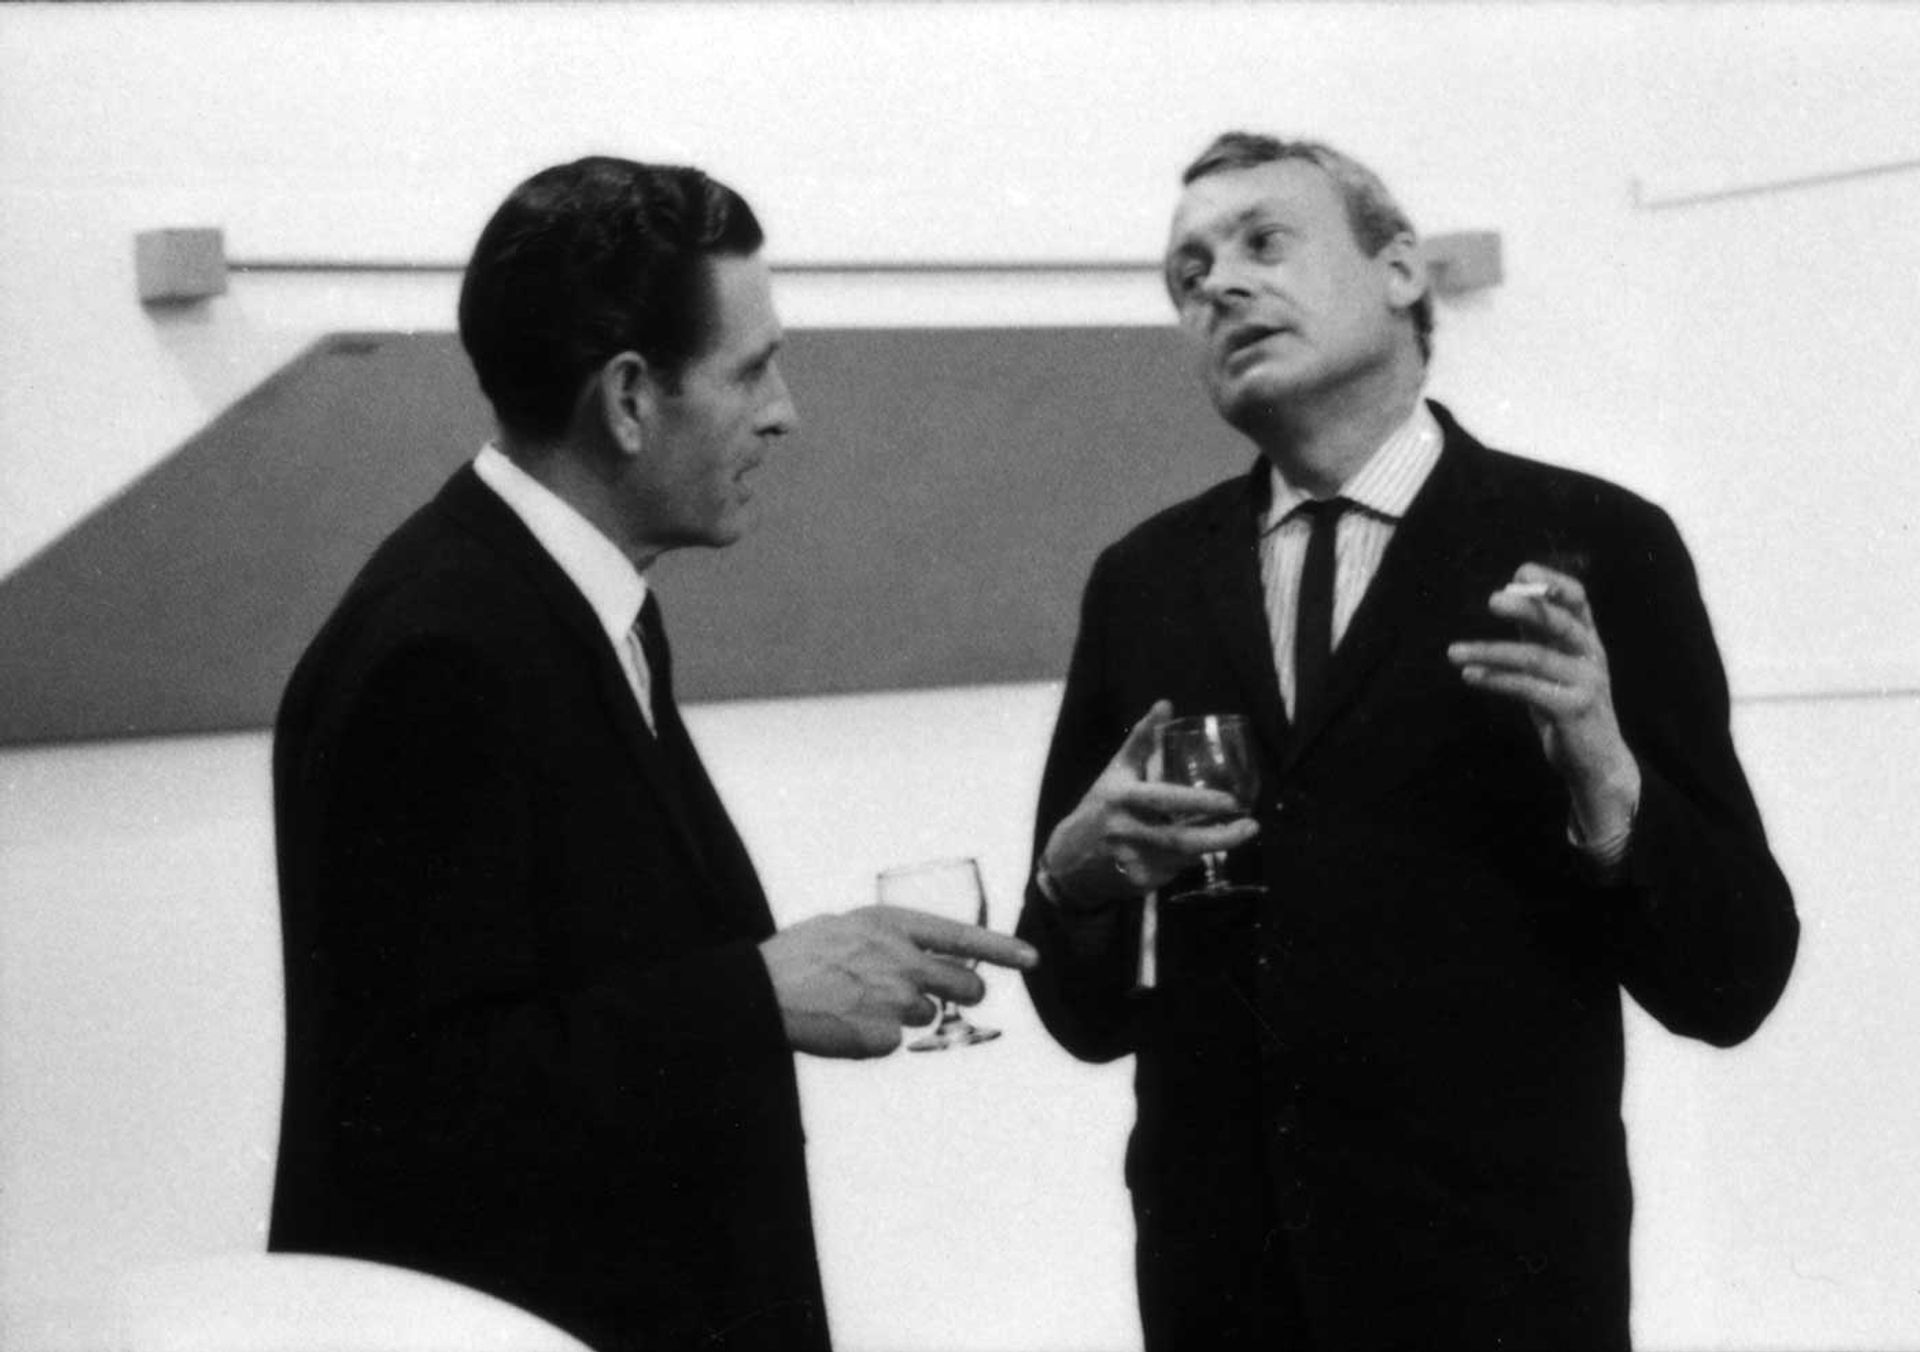 Bryan Robertson (right) at The New Generation exhibition at the Whitechapel Gallery, London, 1968 Whitechapel Gallery Archive